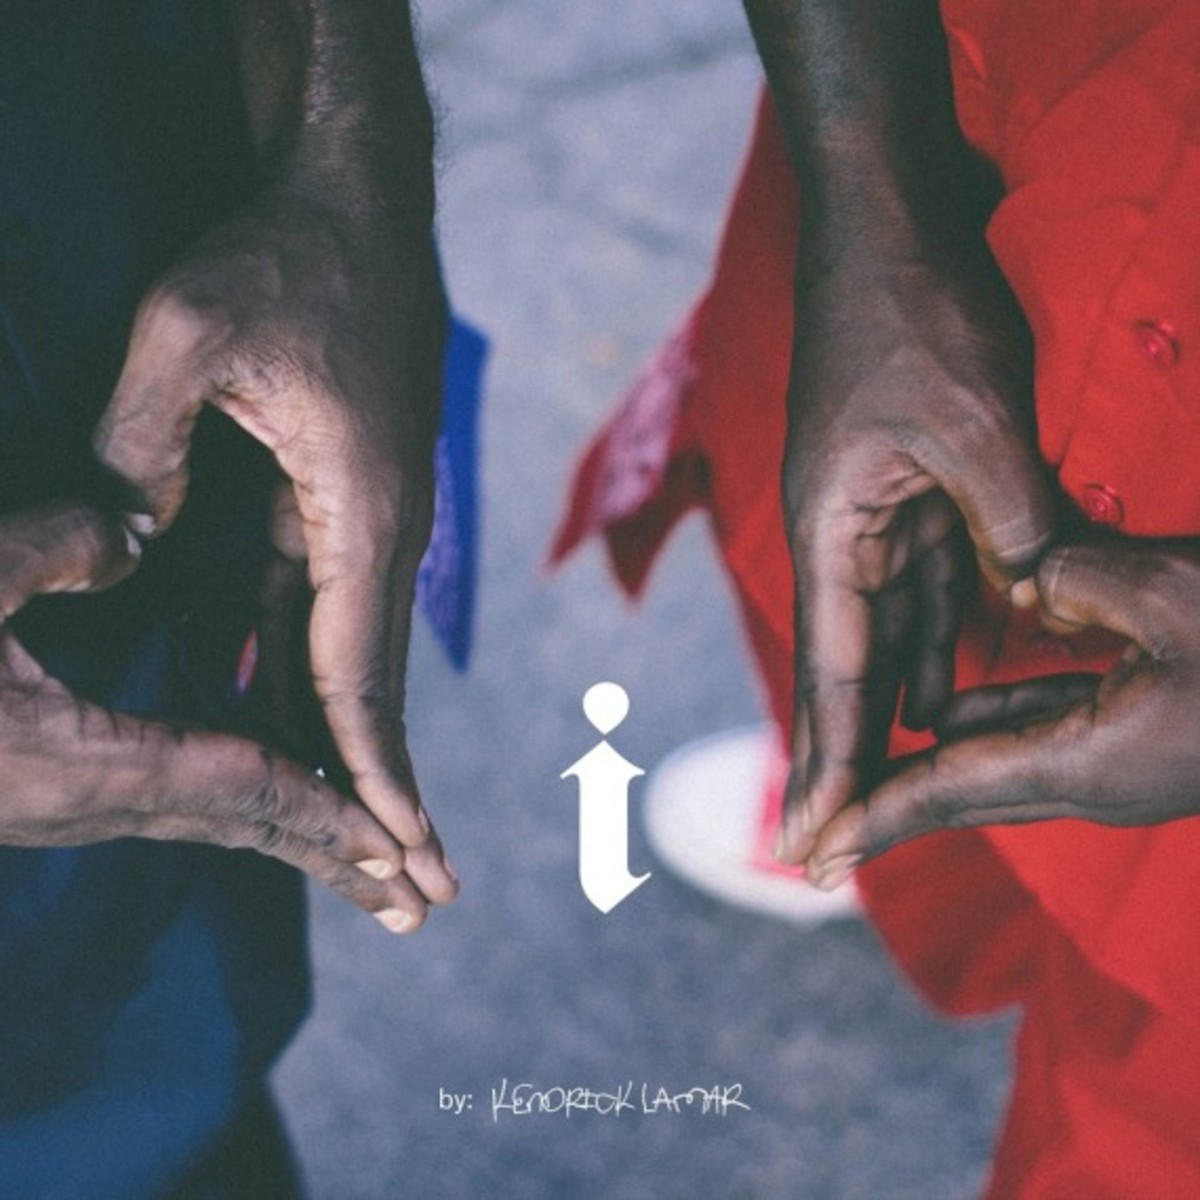 kendrick-lamar-i-music-video-01